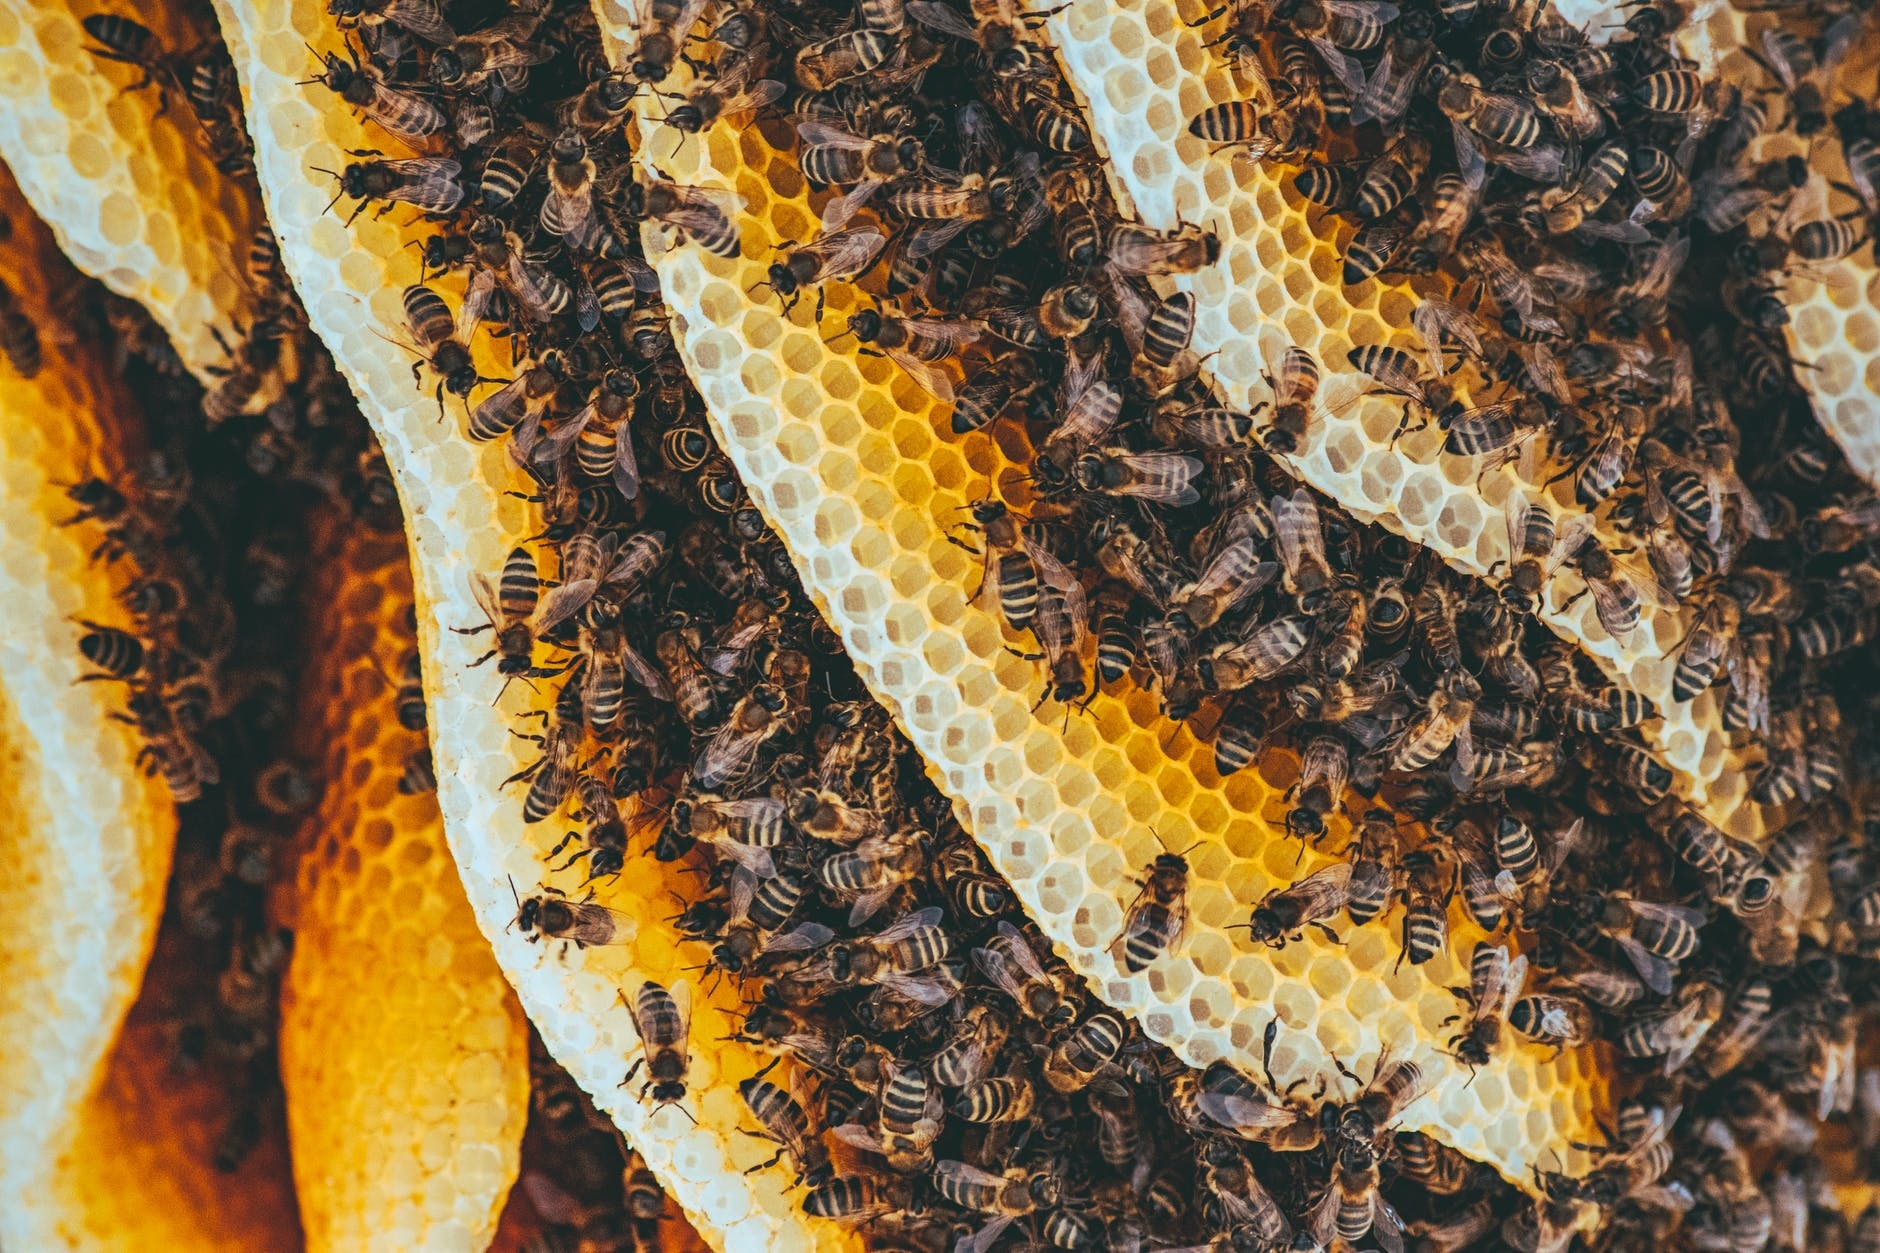 types of honey bees in a colony